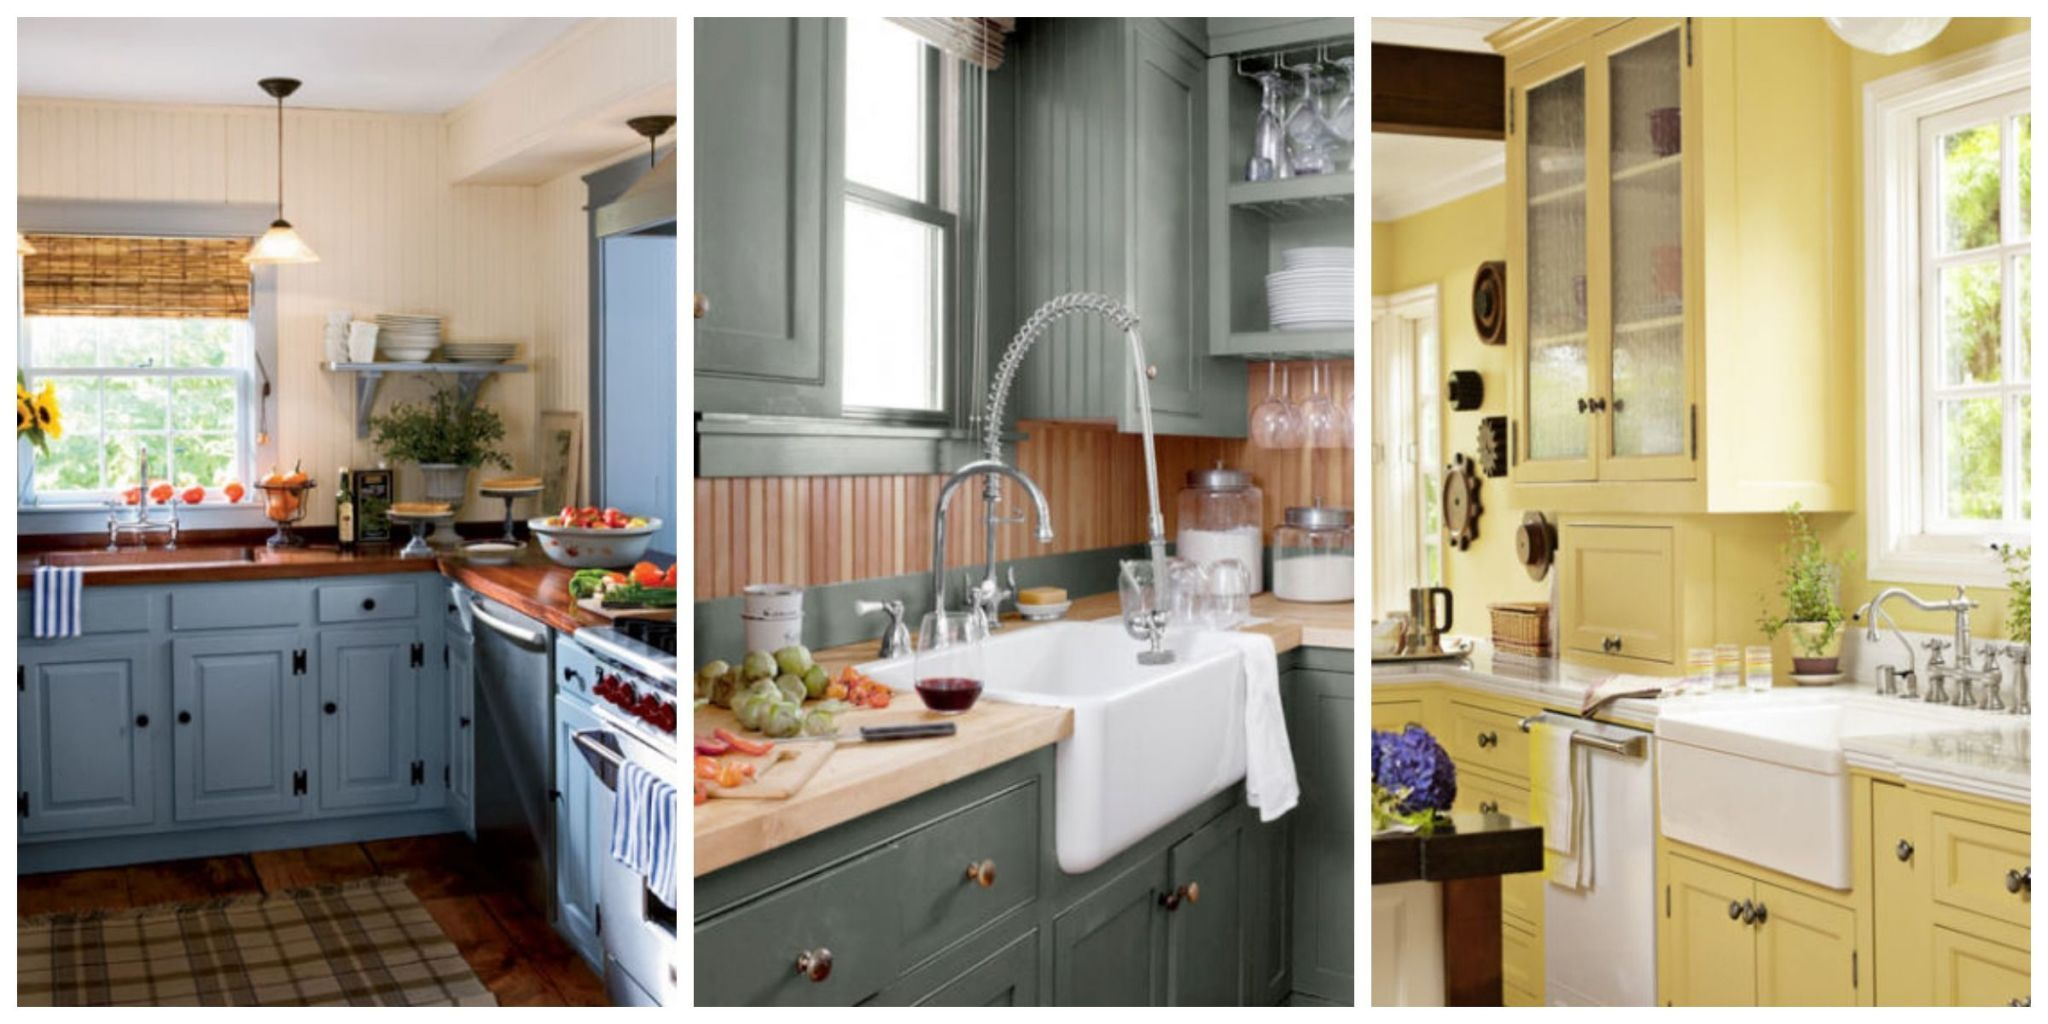 Nice Create A Beautiful And Colorful Kitchen With These Paint And Decorating  Ideas. Also, Check Out These 100+ Kitchen Design Ideas For More Inspiration.